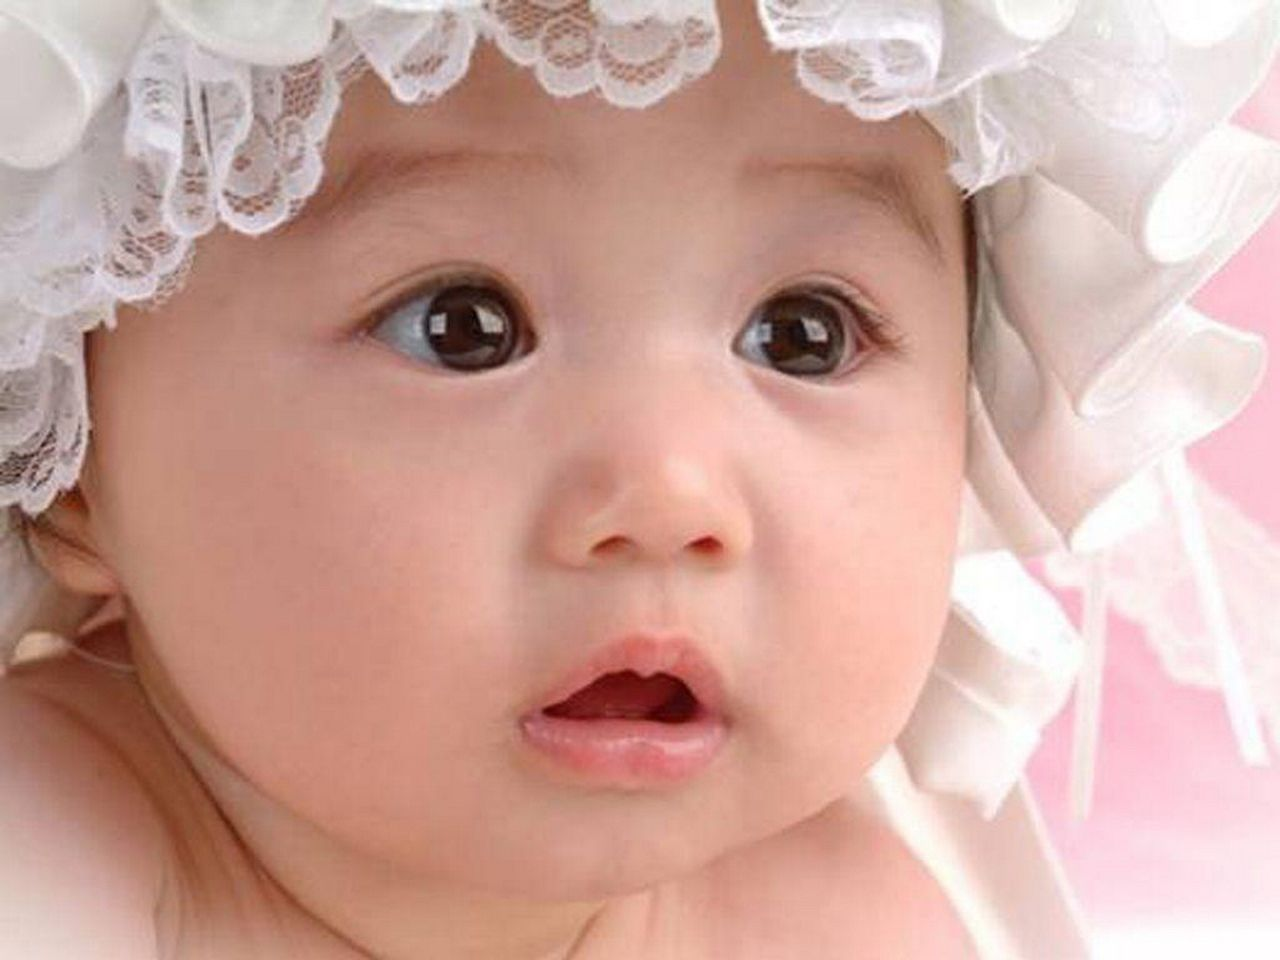 chinese baby girl backgrounds wallpapers free download | your